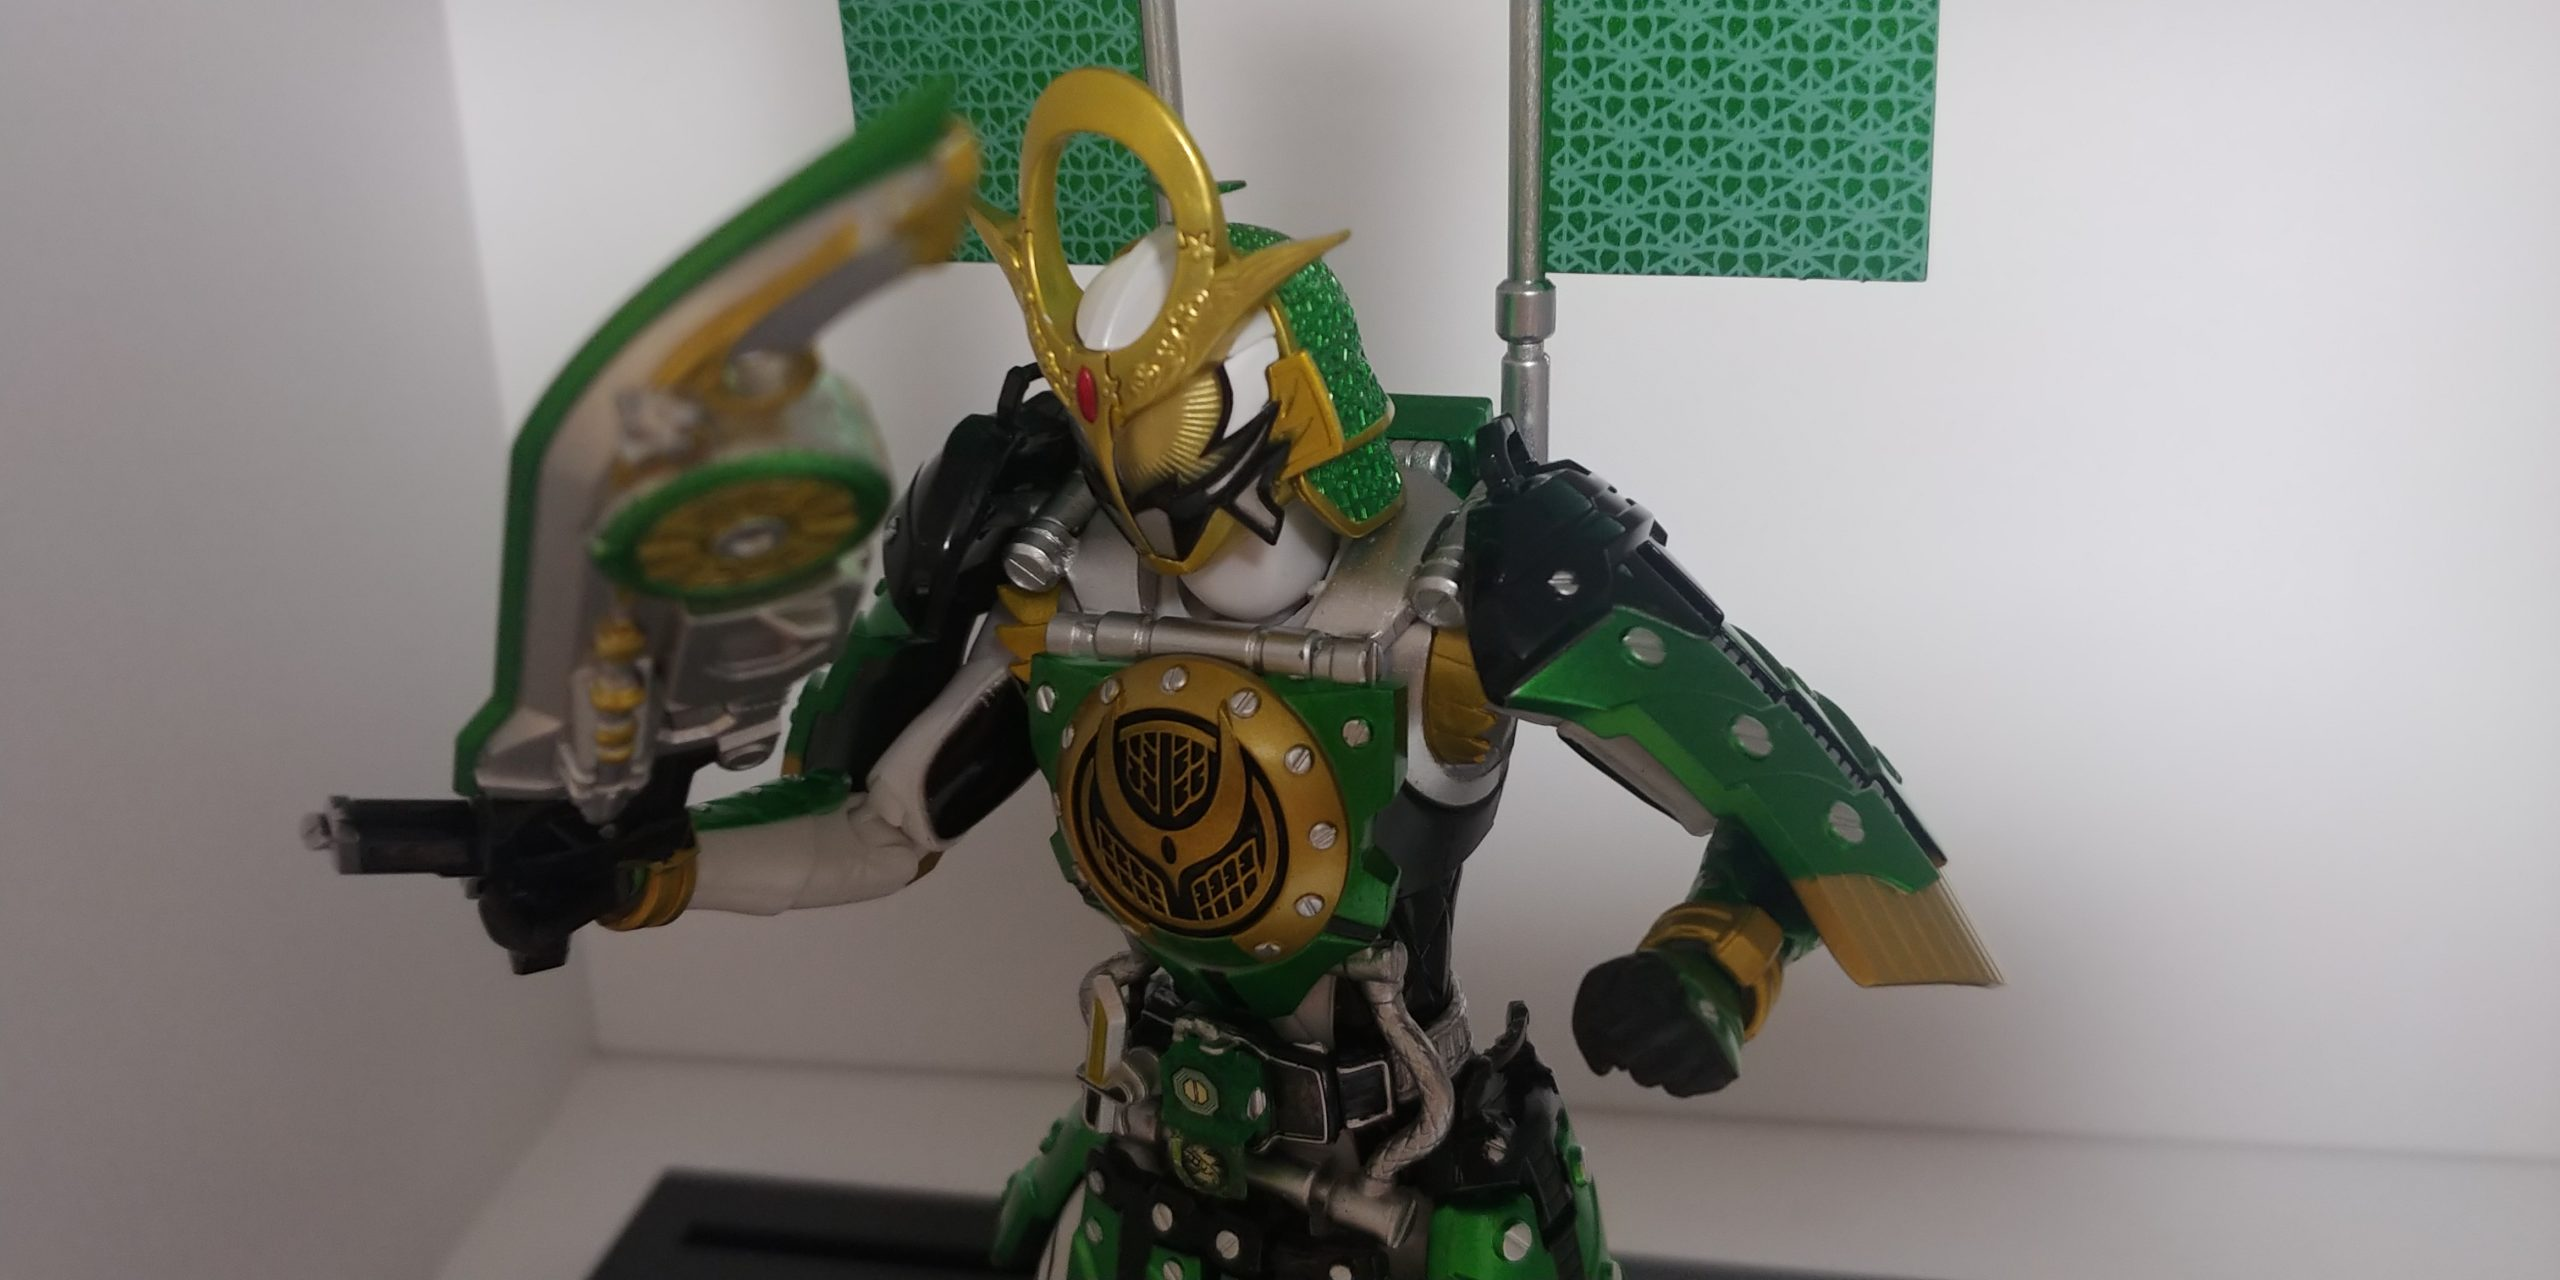 S.H.Figuarts 仮面ライダー斬月 カチドキアームズ レビュー